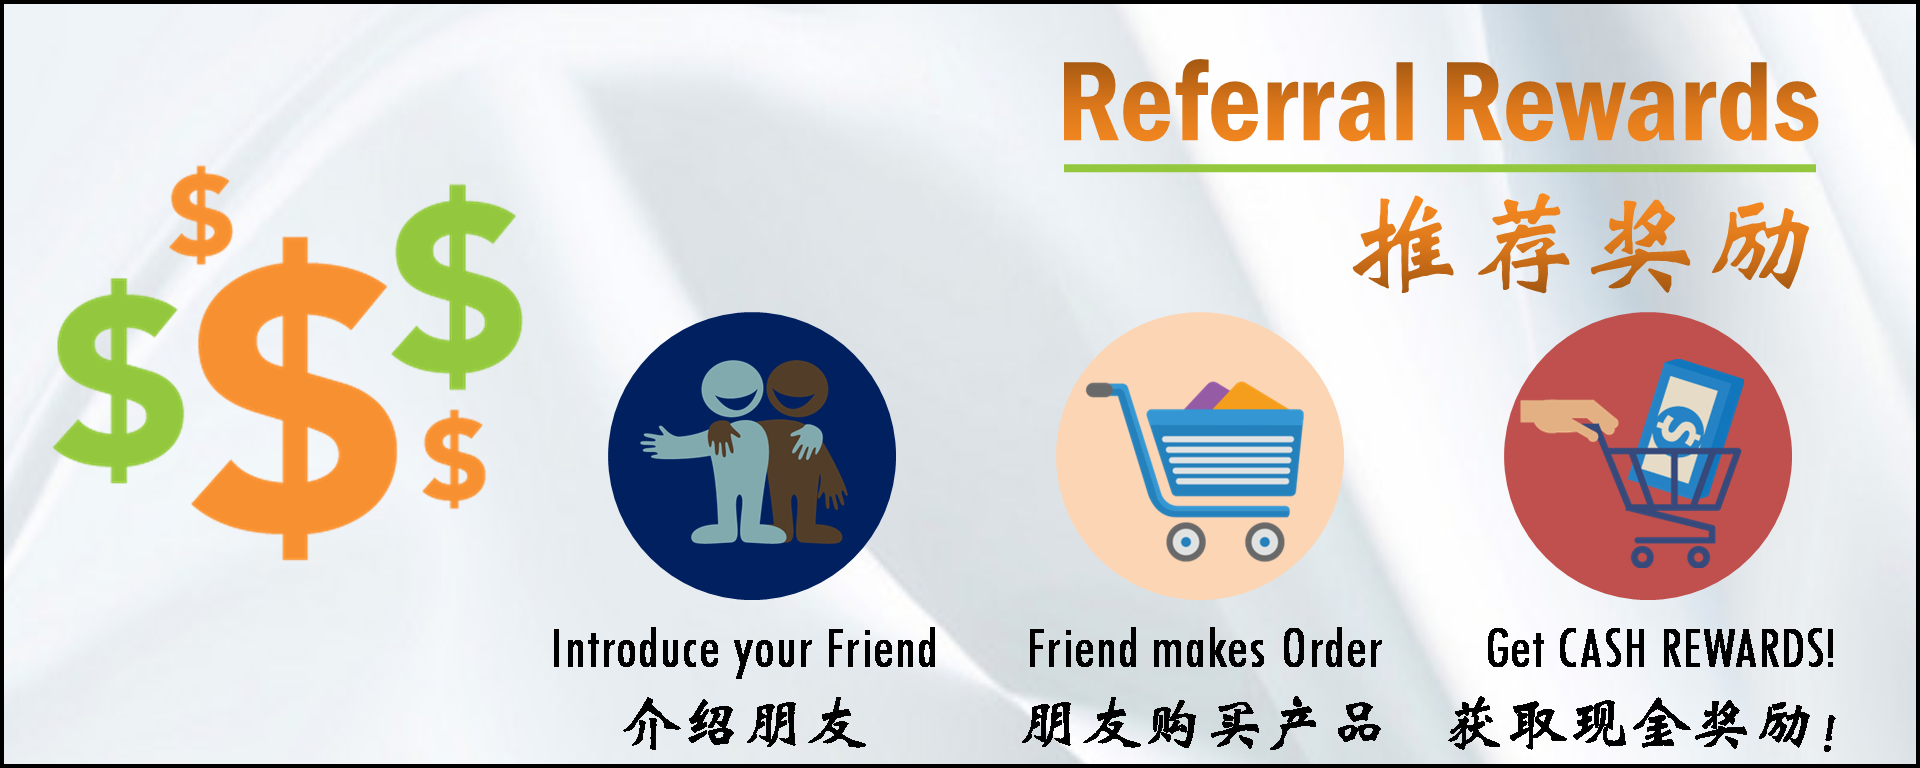 referral rewards.PNG